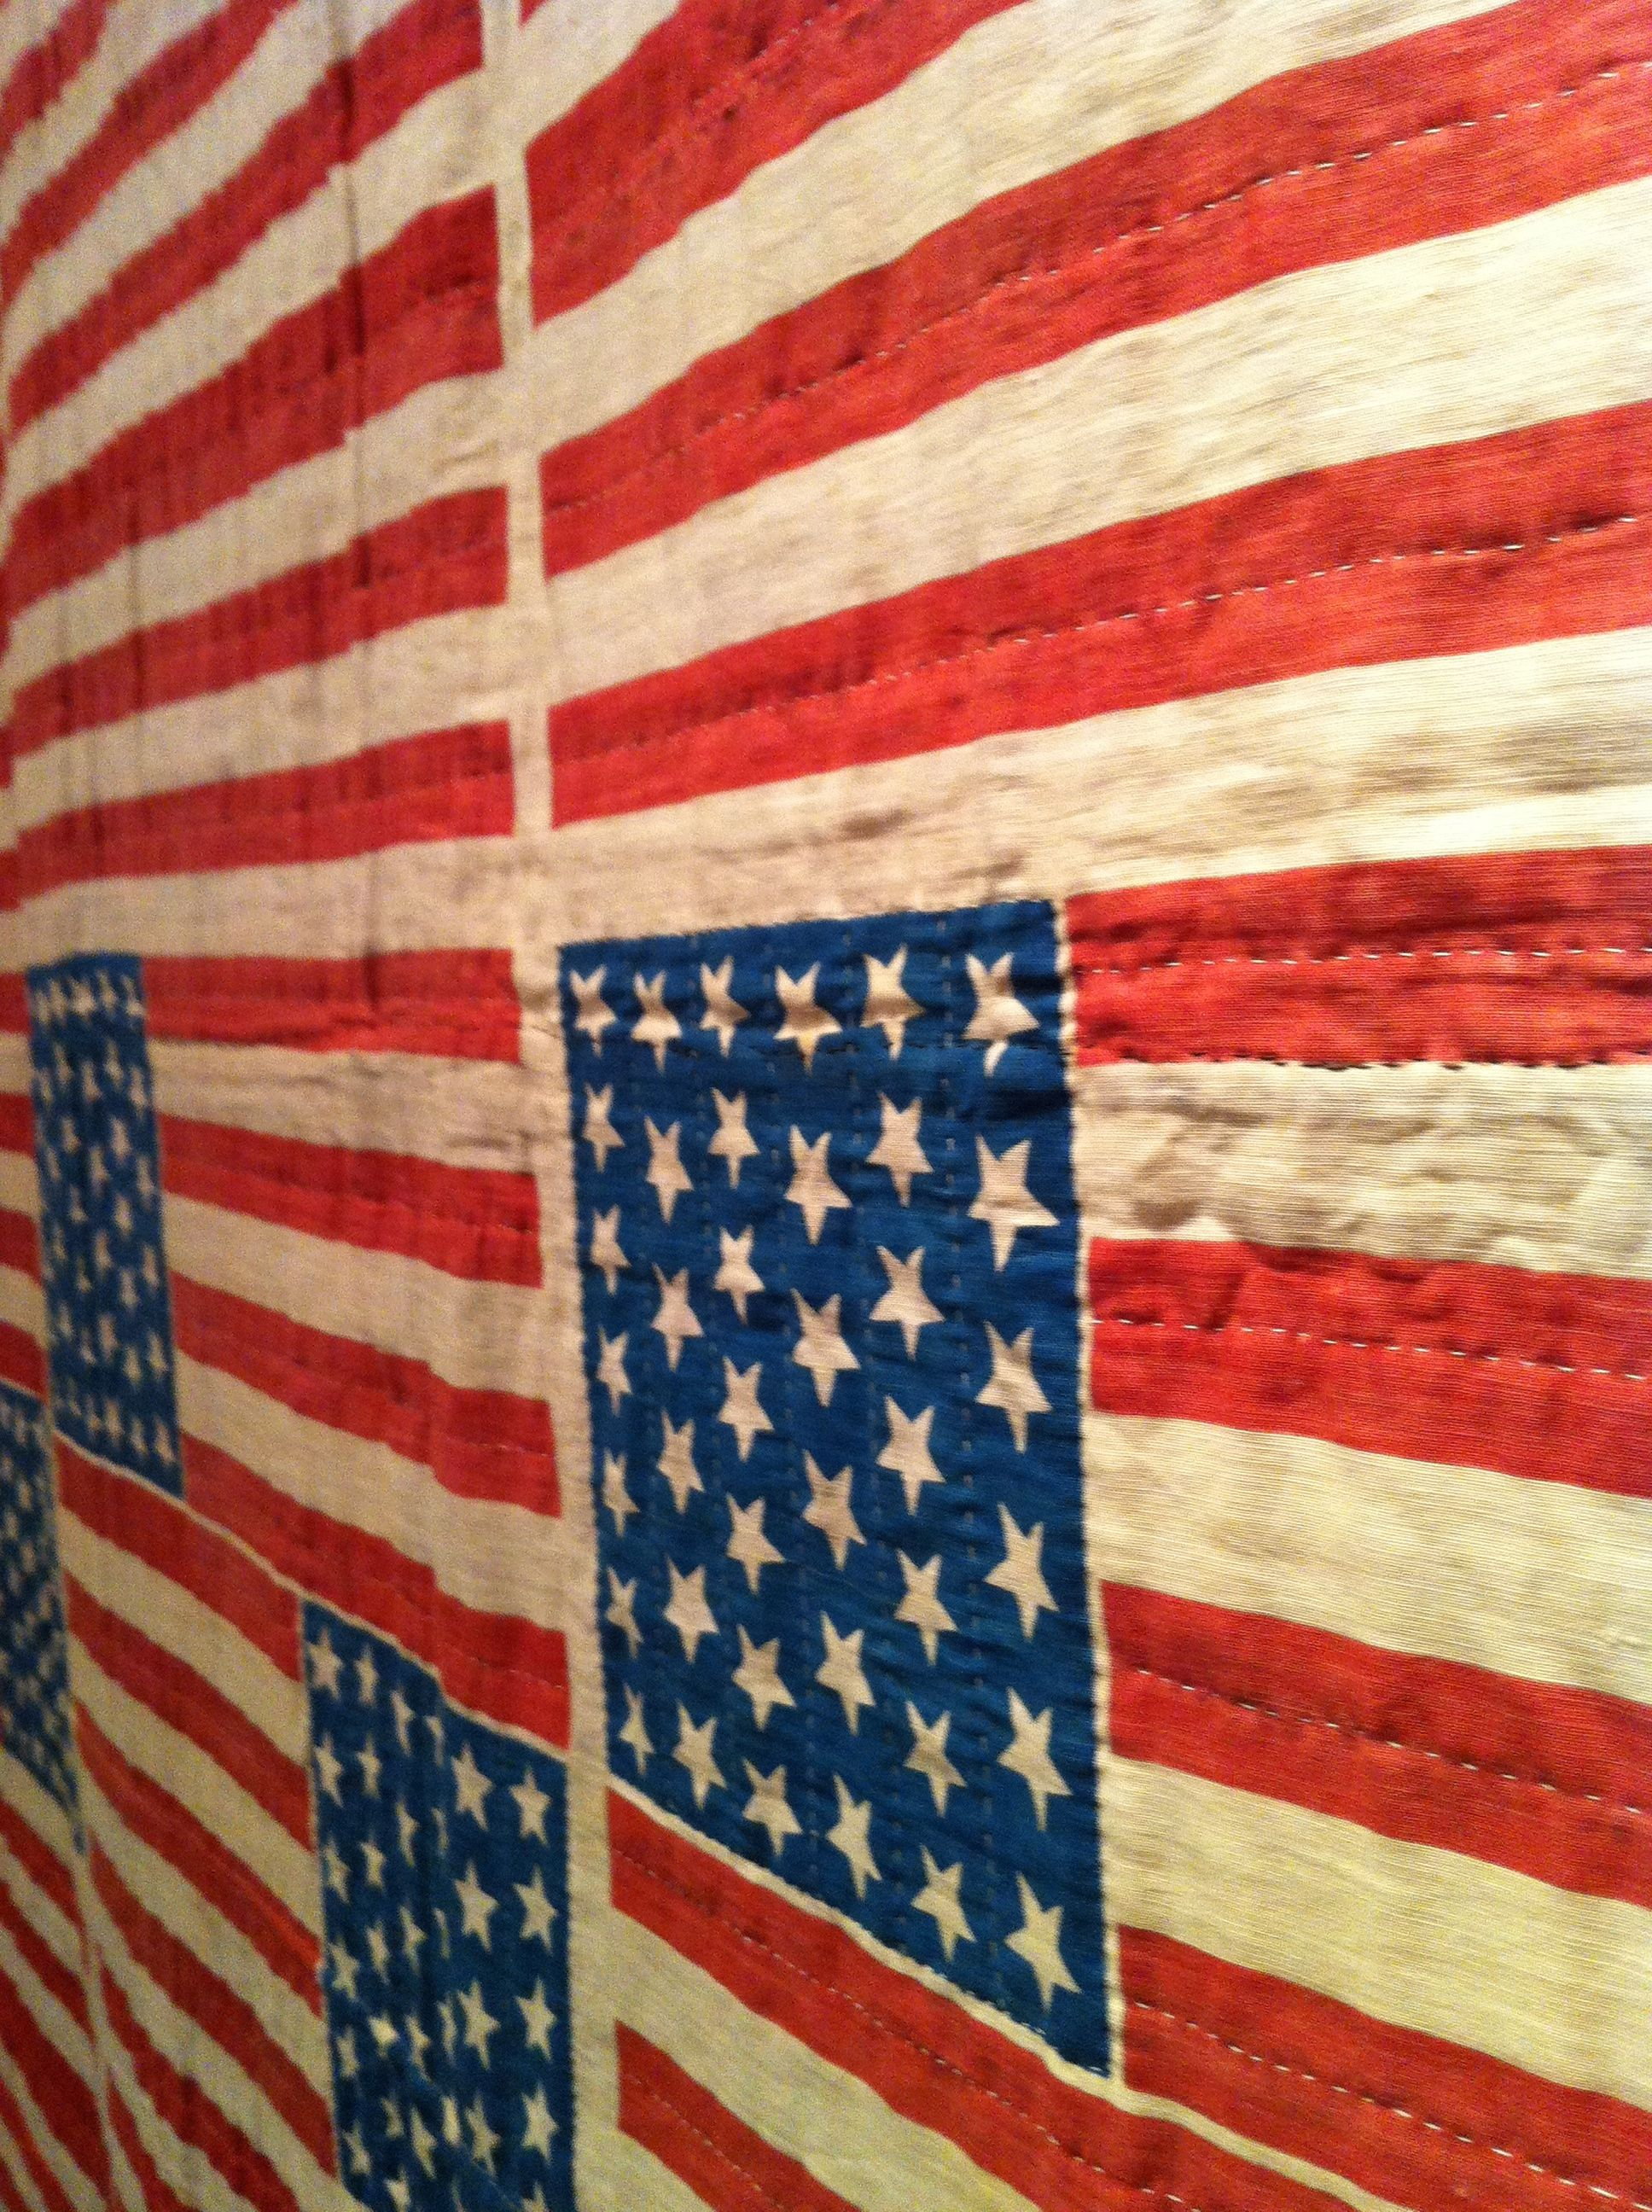 """""""Uncut 39- Star Flags Quilt """" 1889 . This quilt is made from 28 uncut 39-star flag . In anticipation of the Dakota joining as a single state in 1890, flag manufactures jumped the gun in producing flags with this star configuration. Four states actually joined the union in 1890 , bringing the number of states and stars to 43. at Frazier Musuem Loiusville KY"""